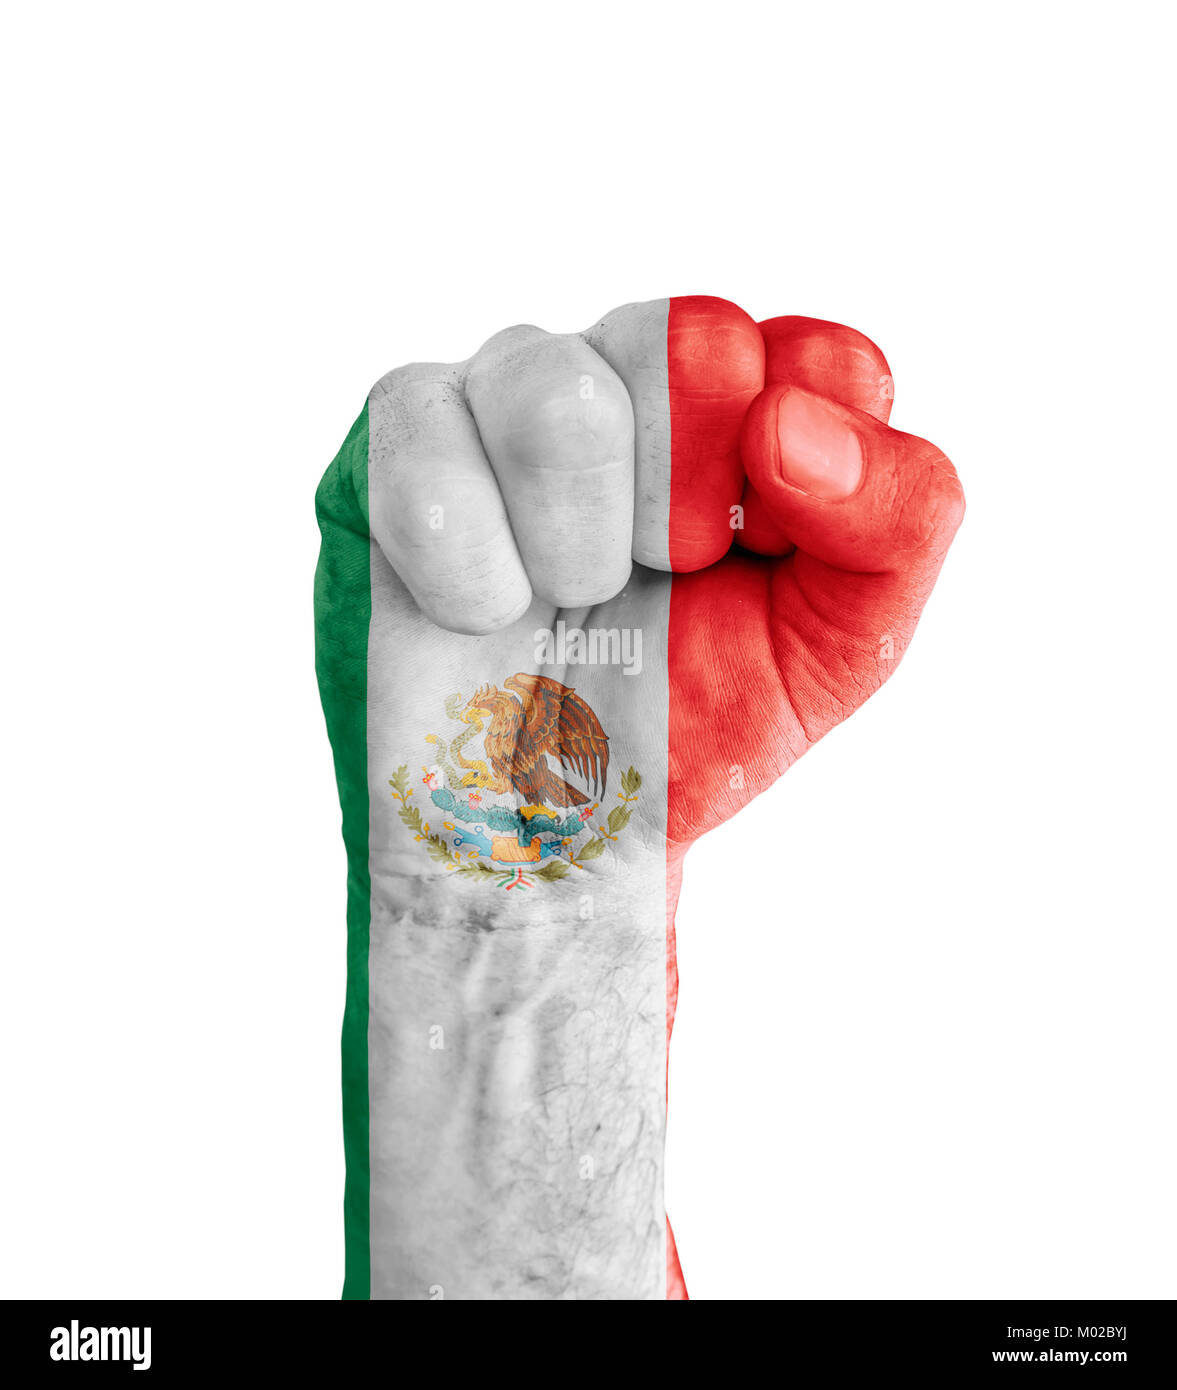 Flag Of Mexico Painted On Human Fist Like Victory Symbol Stock Photo